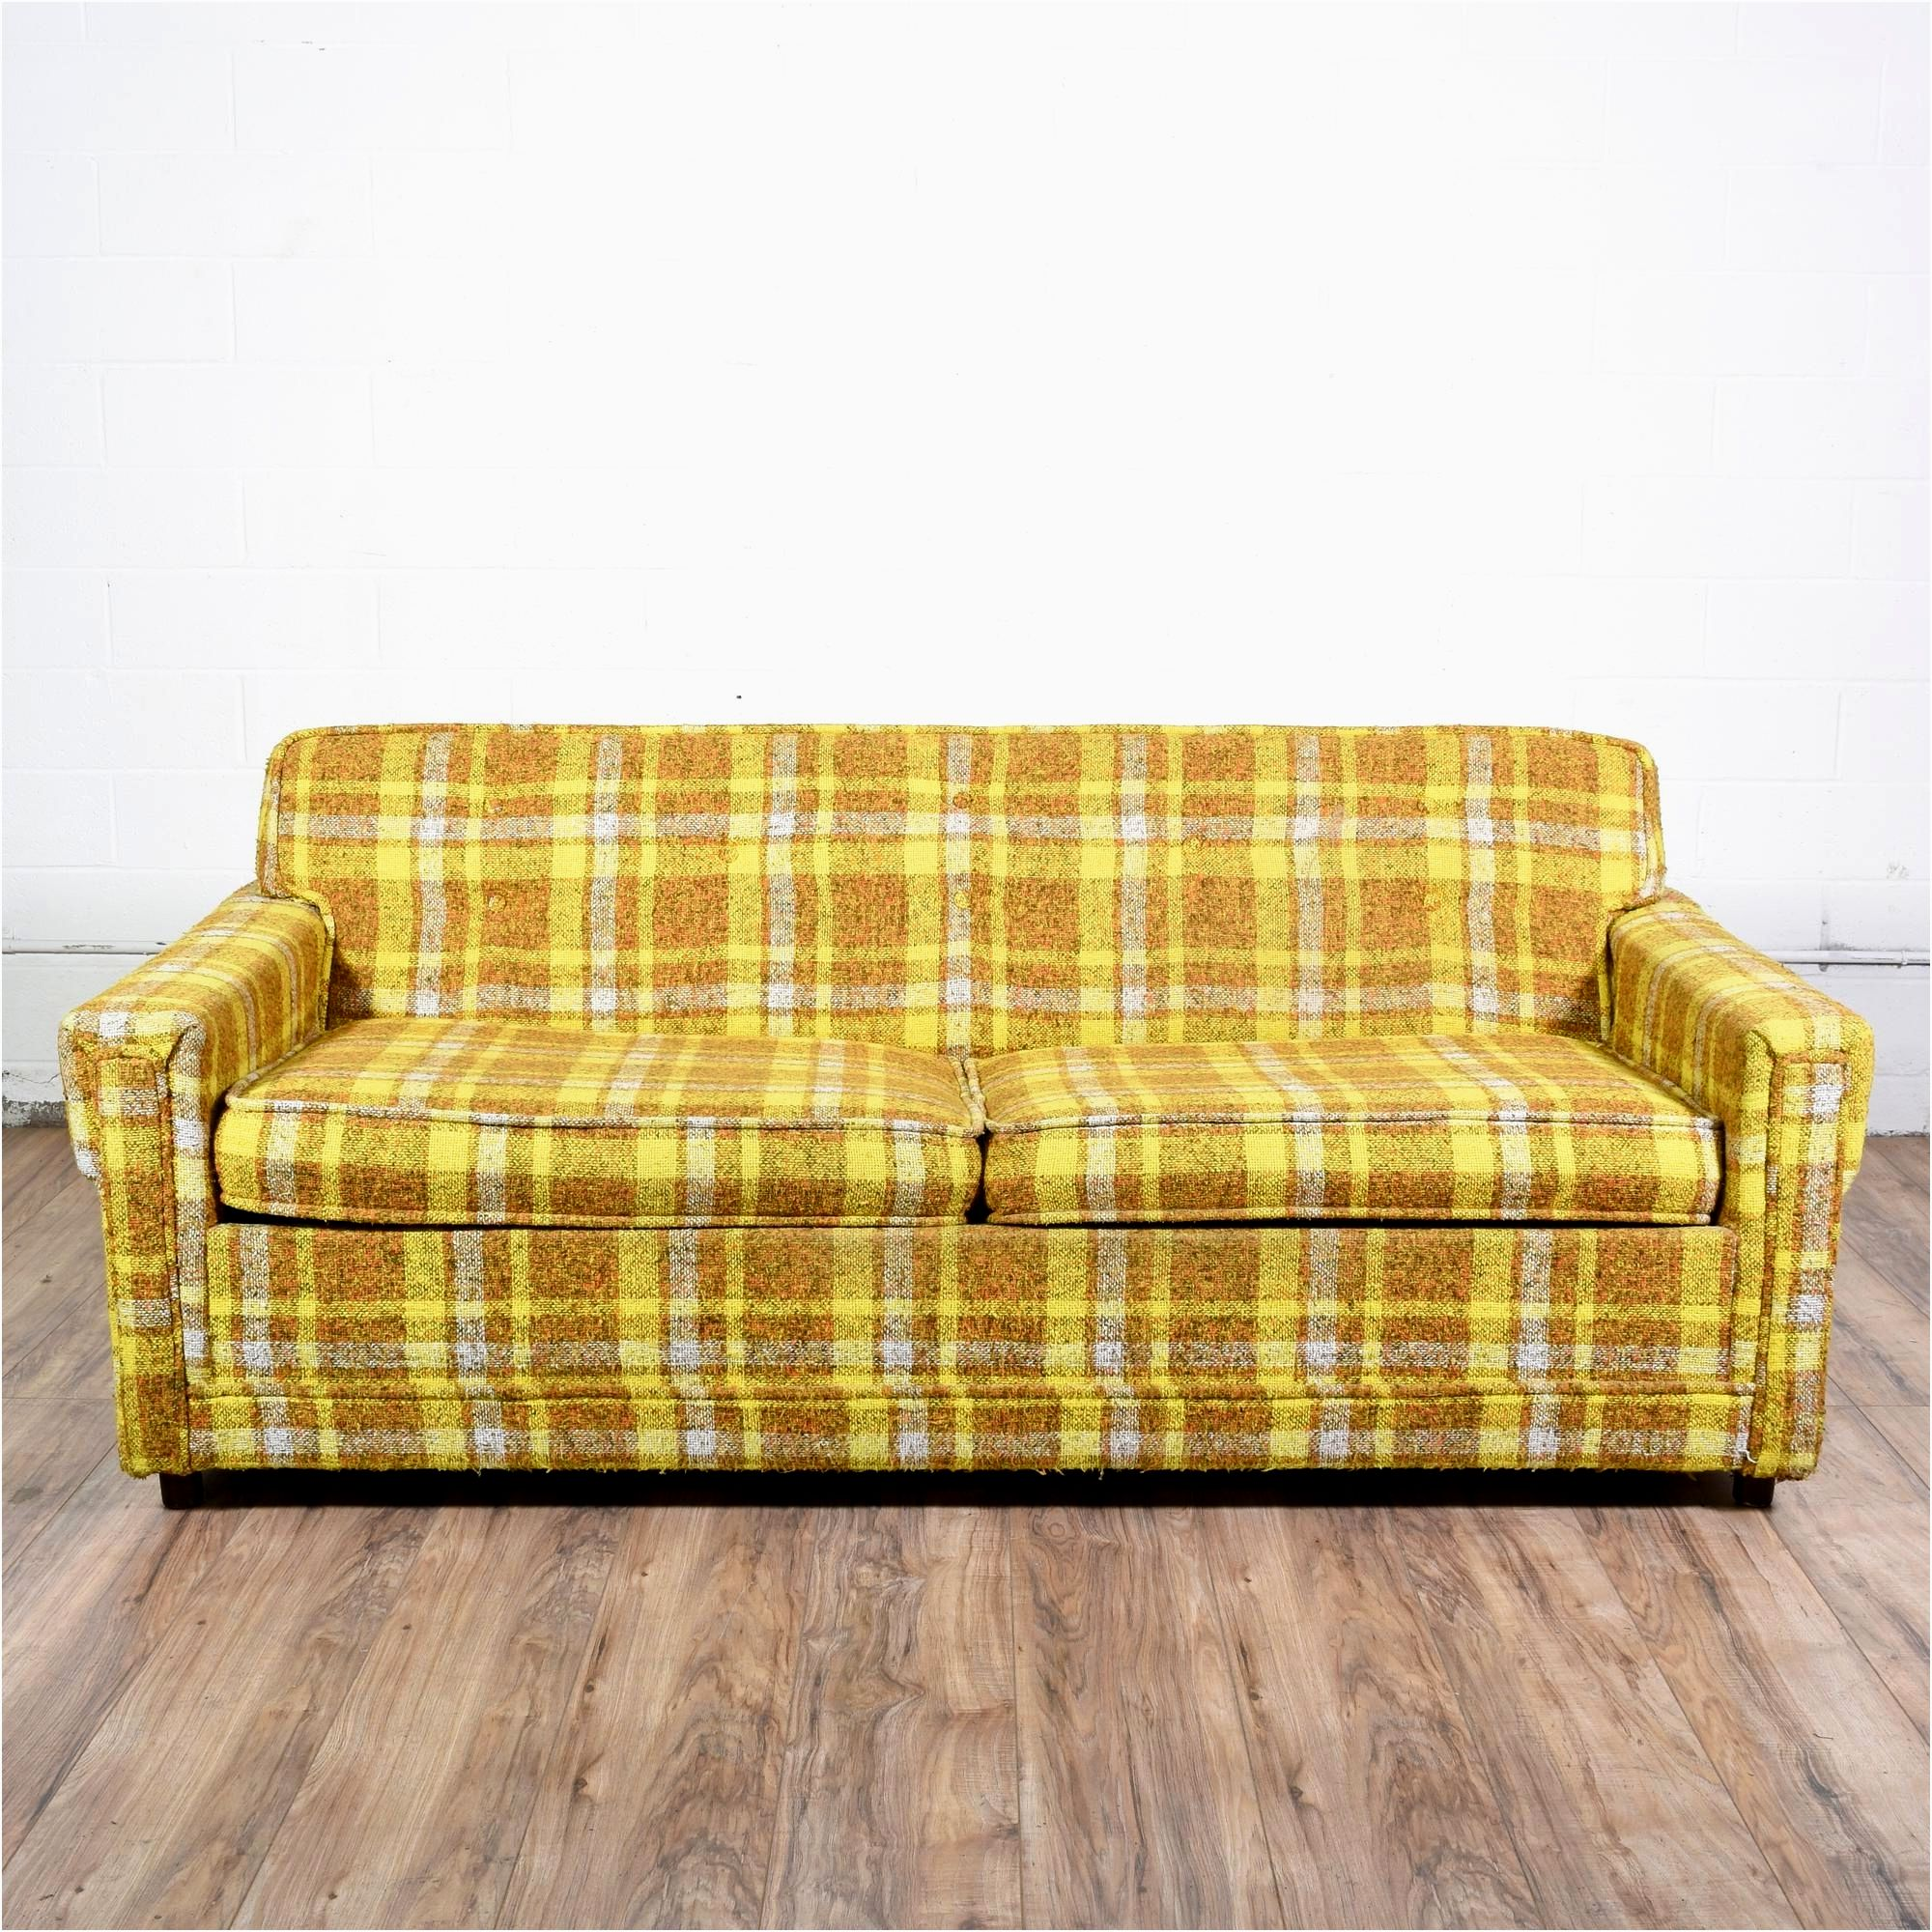 fresh mid century modern sofa photograph-Fascinating Mid Century Modern sofa Ideas